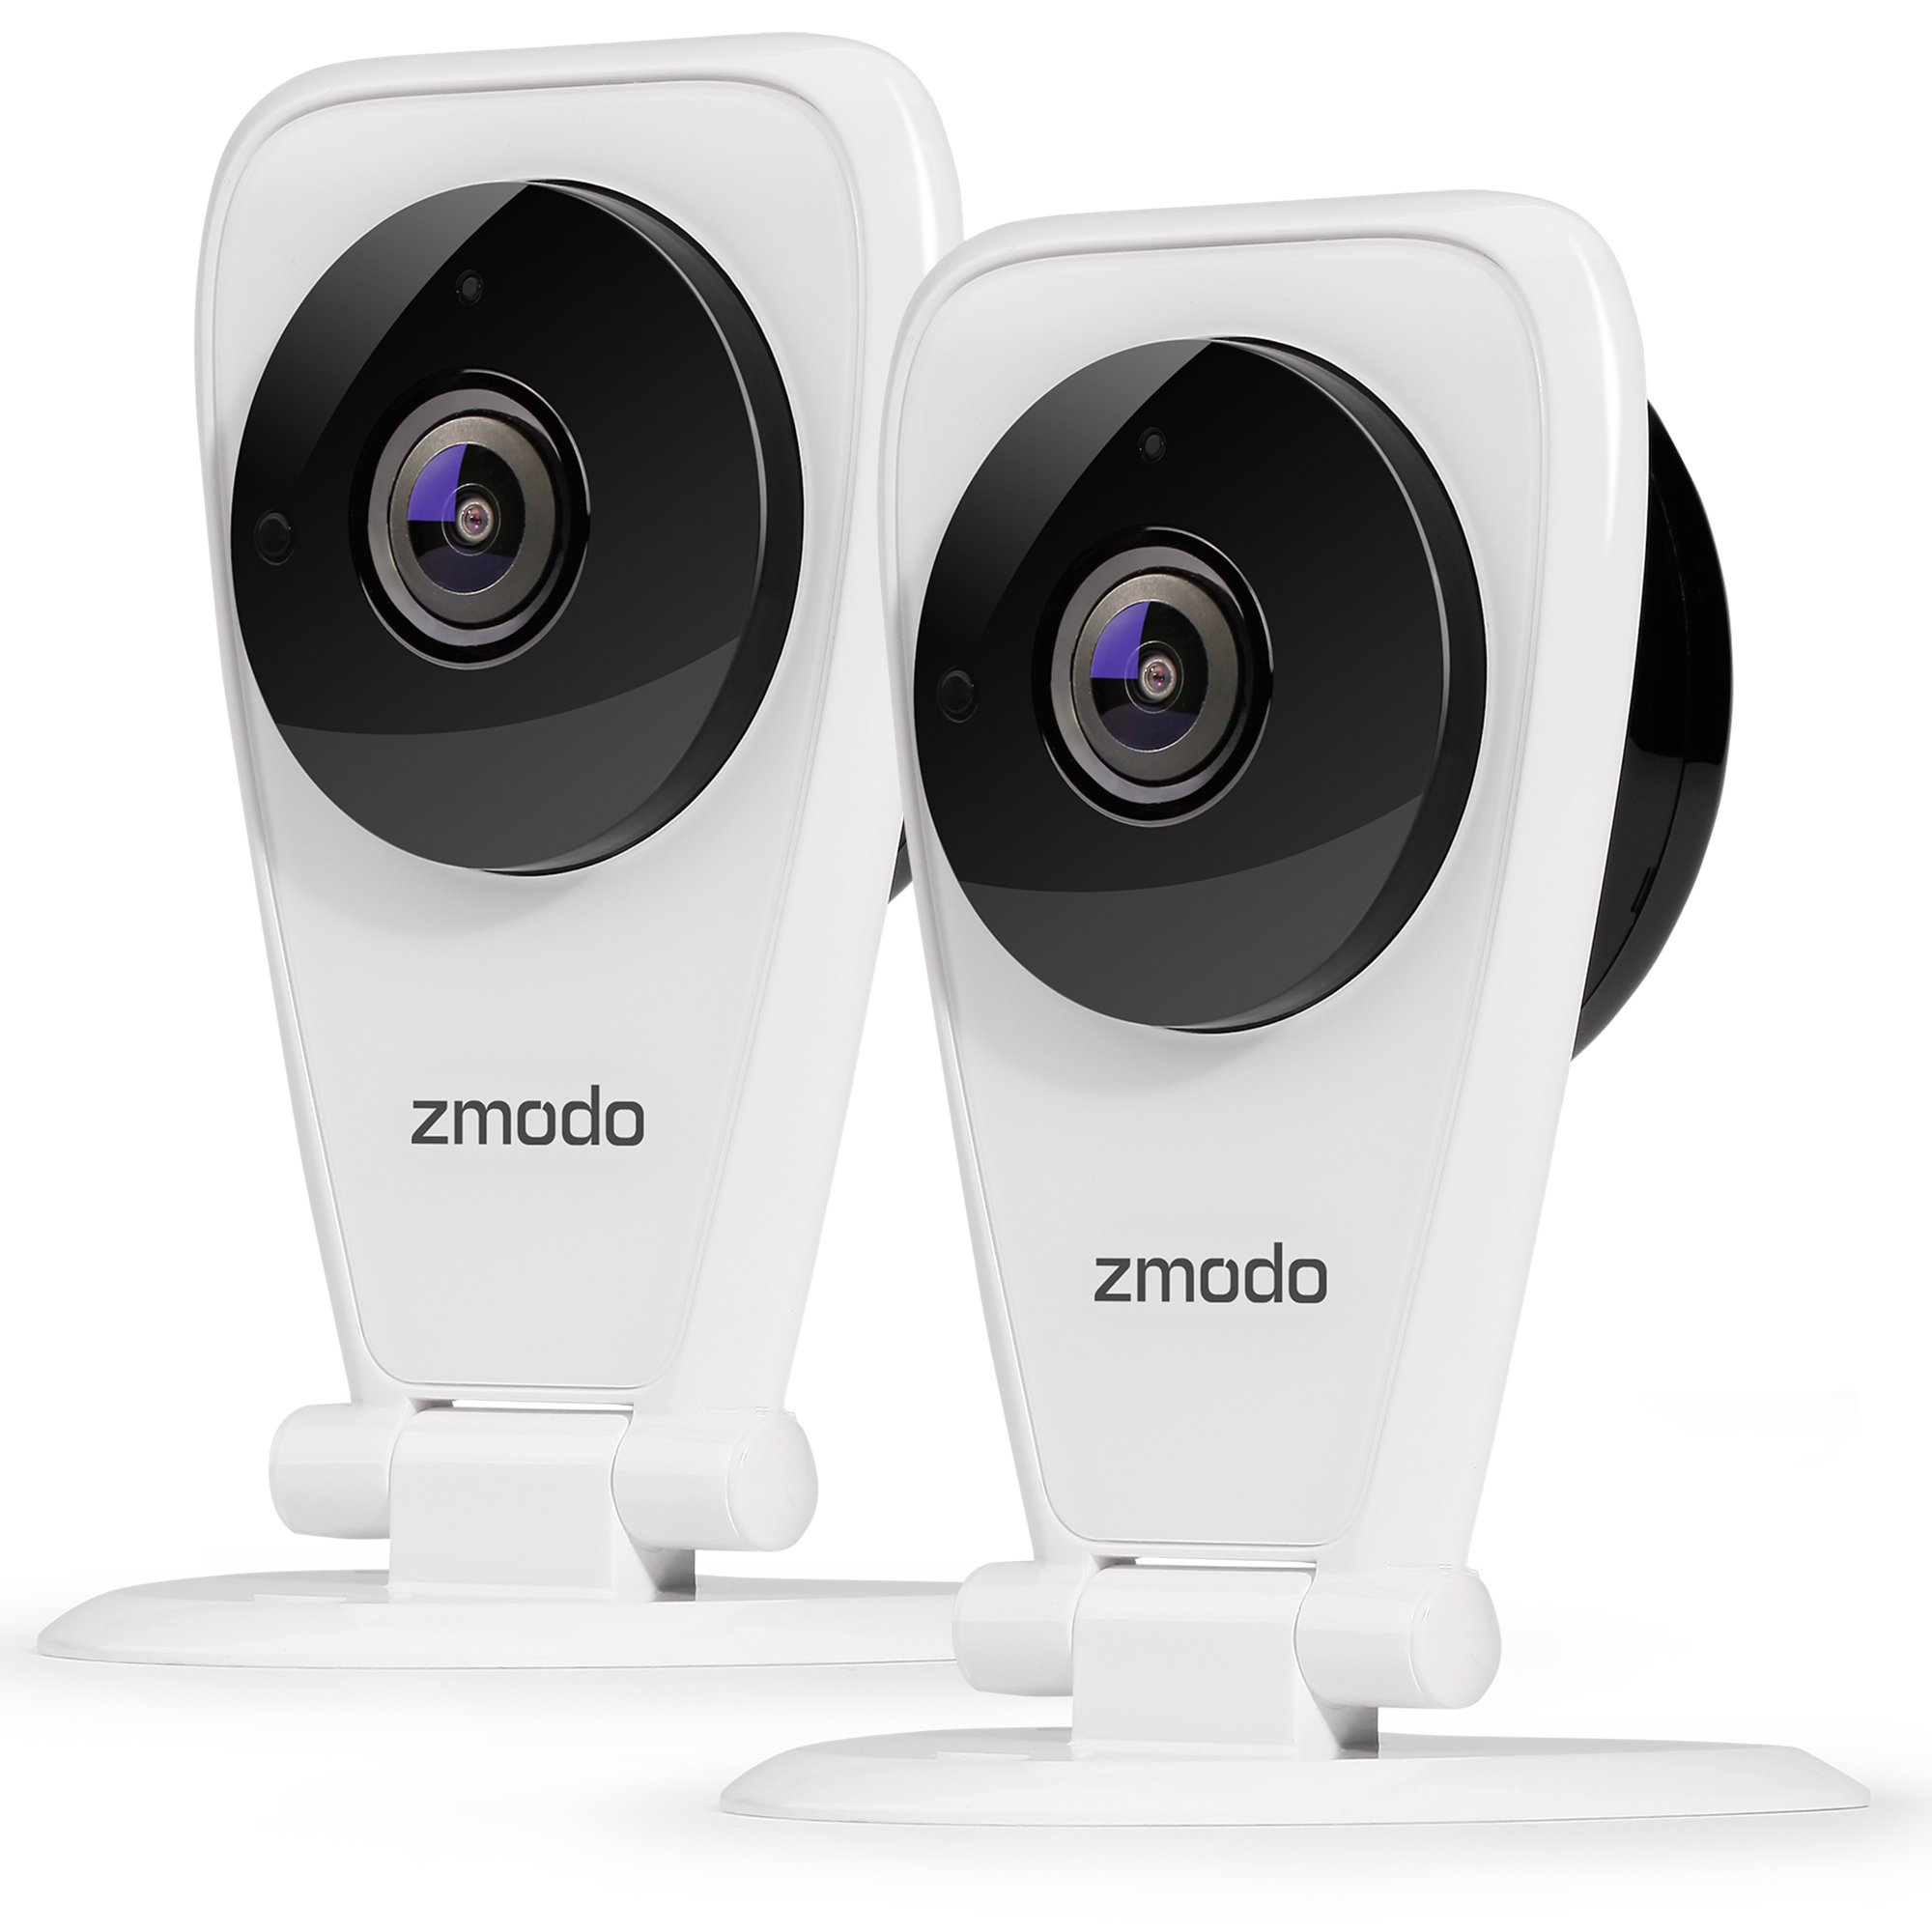 Zmodo EZCam 720p HD IP Camera, Wi-Fi Home Security Surveillance Camera System with Night Vision, Motion Alert, Remote Monitor, Cloud Service Available - Work with Alexa (2 Pack) by Zmodo